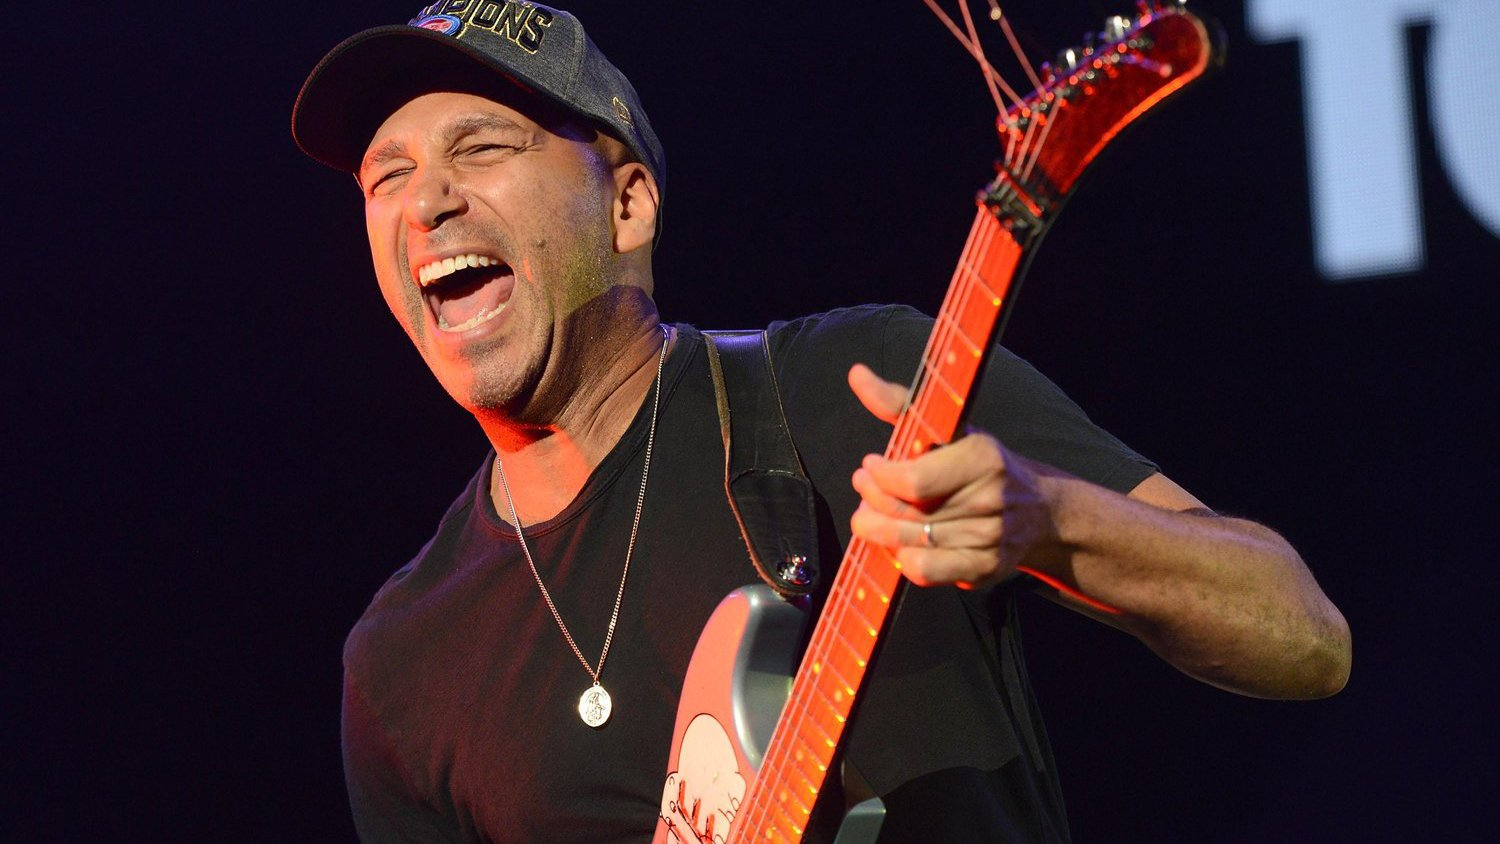 Tom Morello Responds To Backlash After Throwing Fan's Phone From The Stage